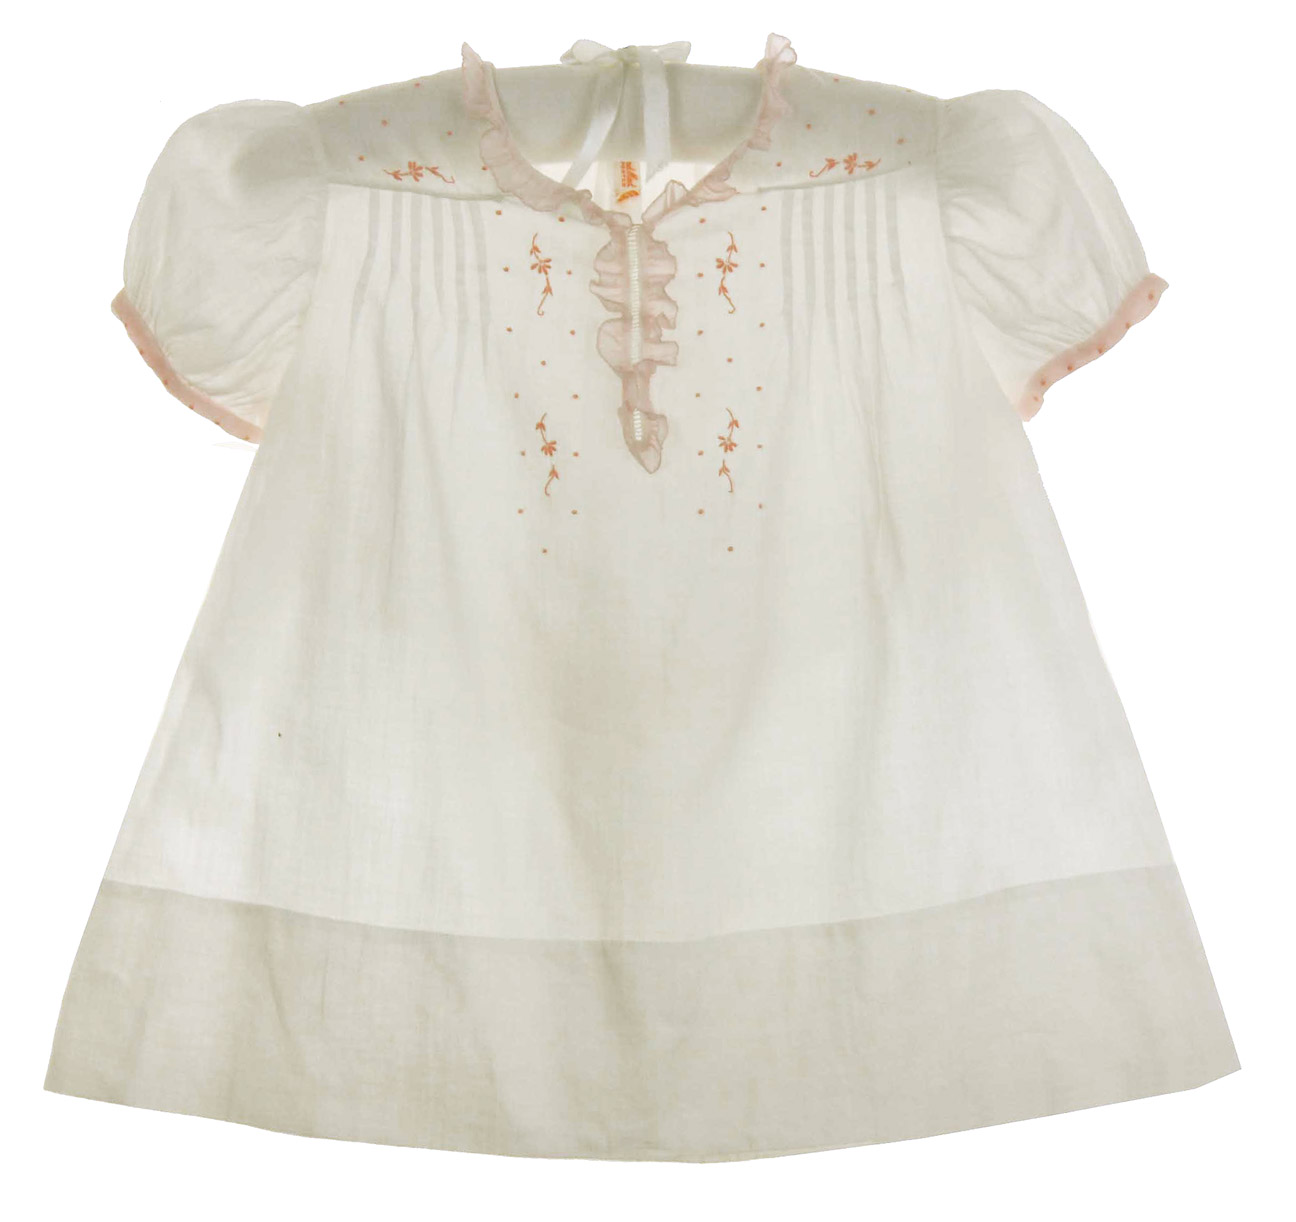 heirloom 1940s Feltman Brothers pink and white baby dress